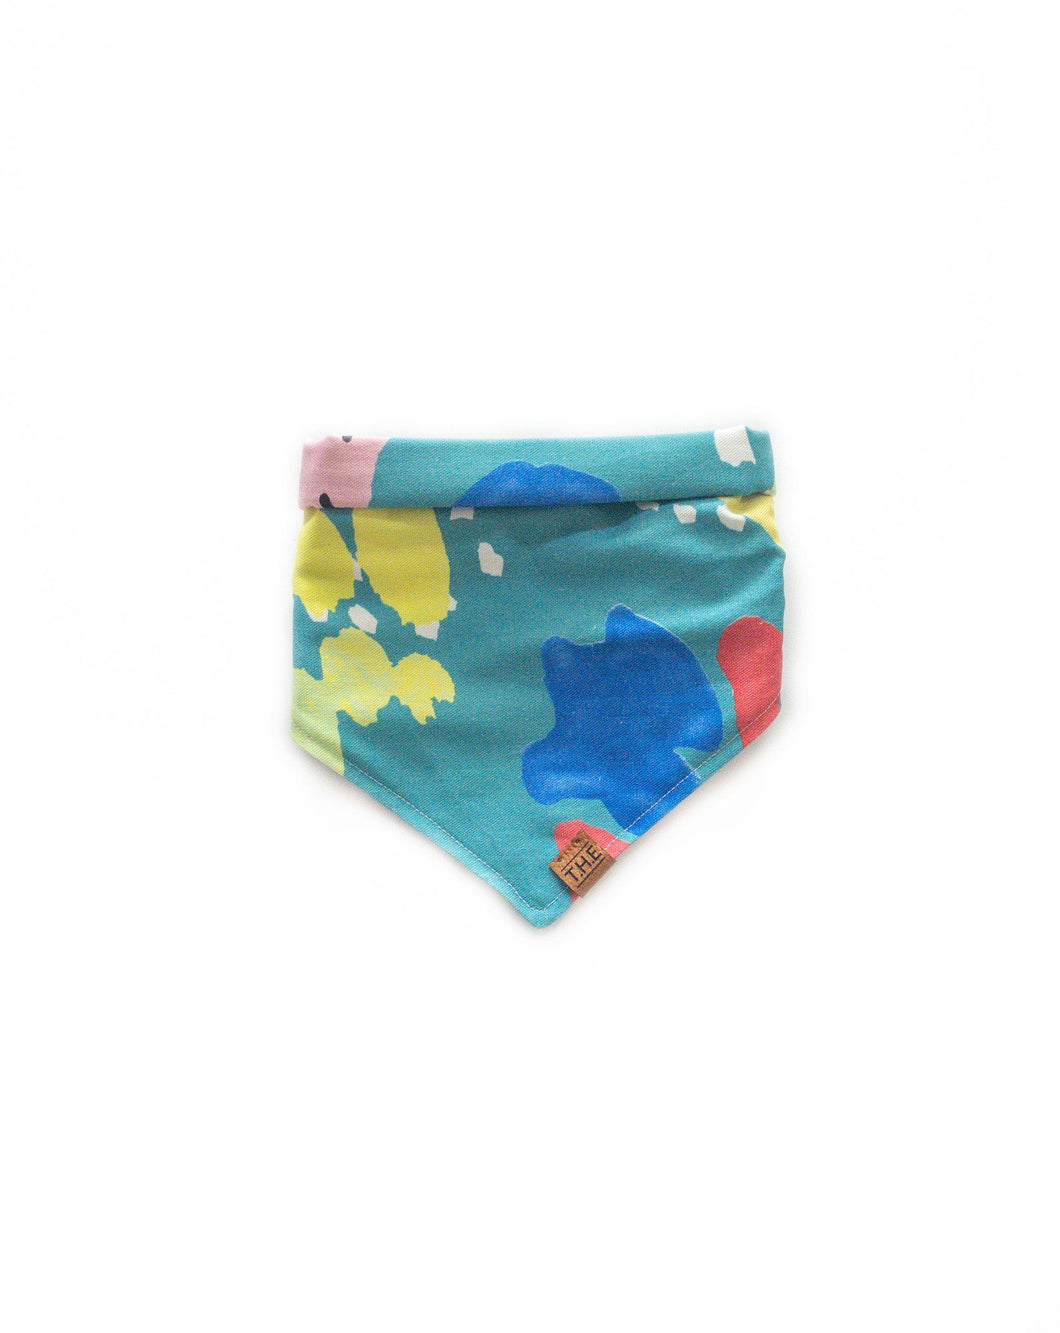 Dog Bandana - Fun Fair